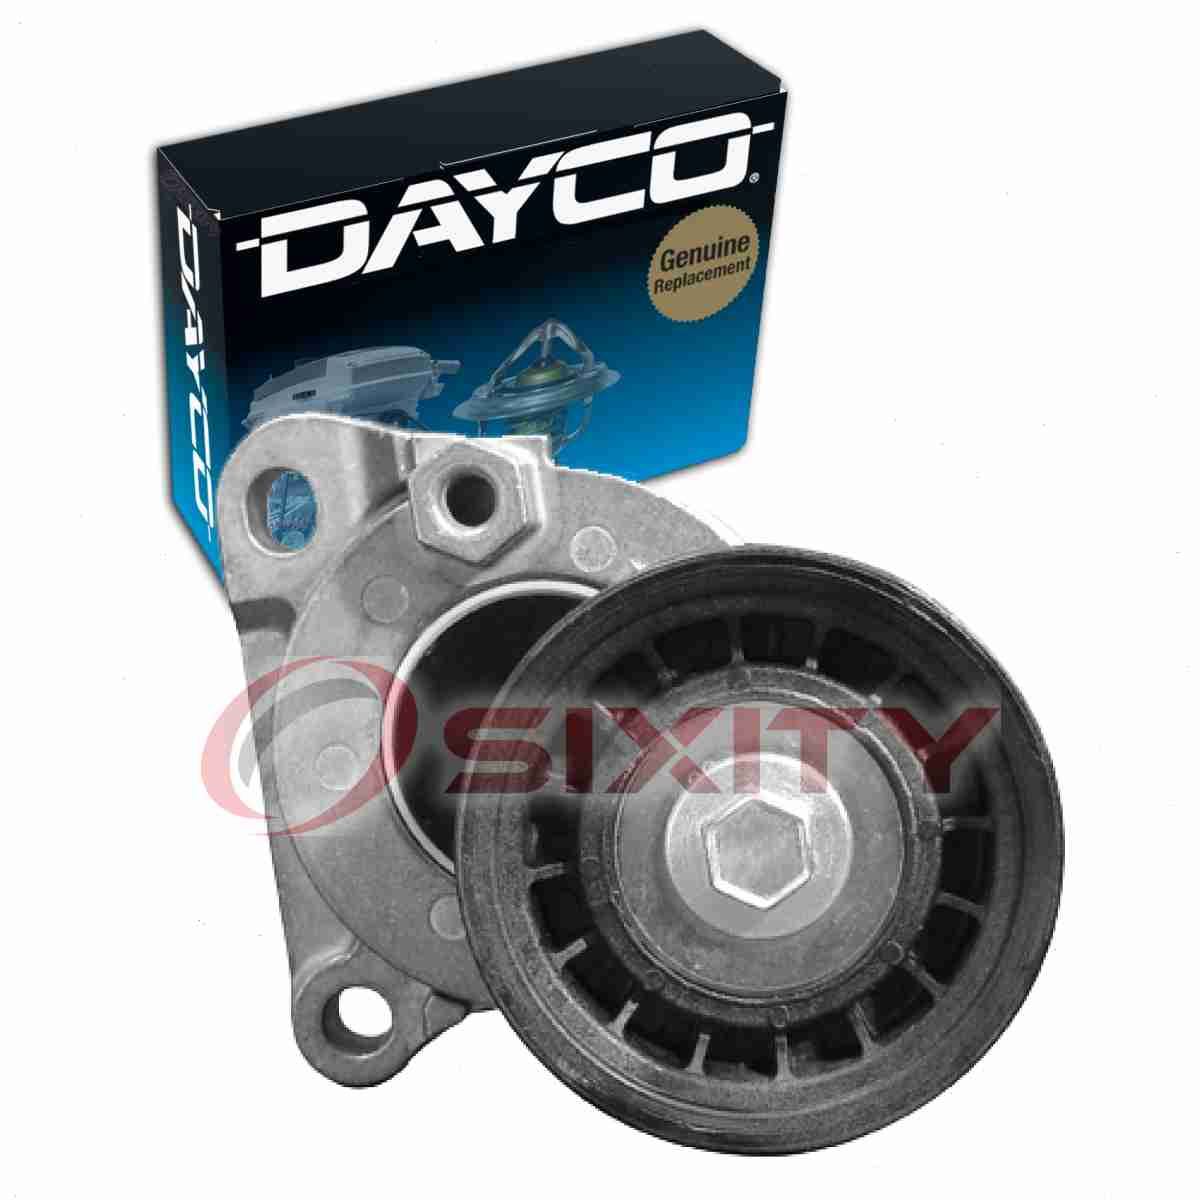 Dayco Drive Belt Tensioner Assembly for 2006-2012 Ford Fusion 2.3L 2.5L L4 yv